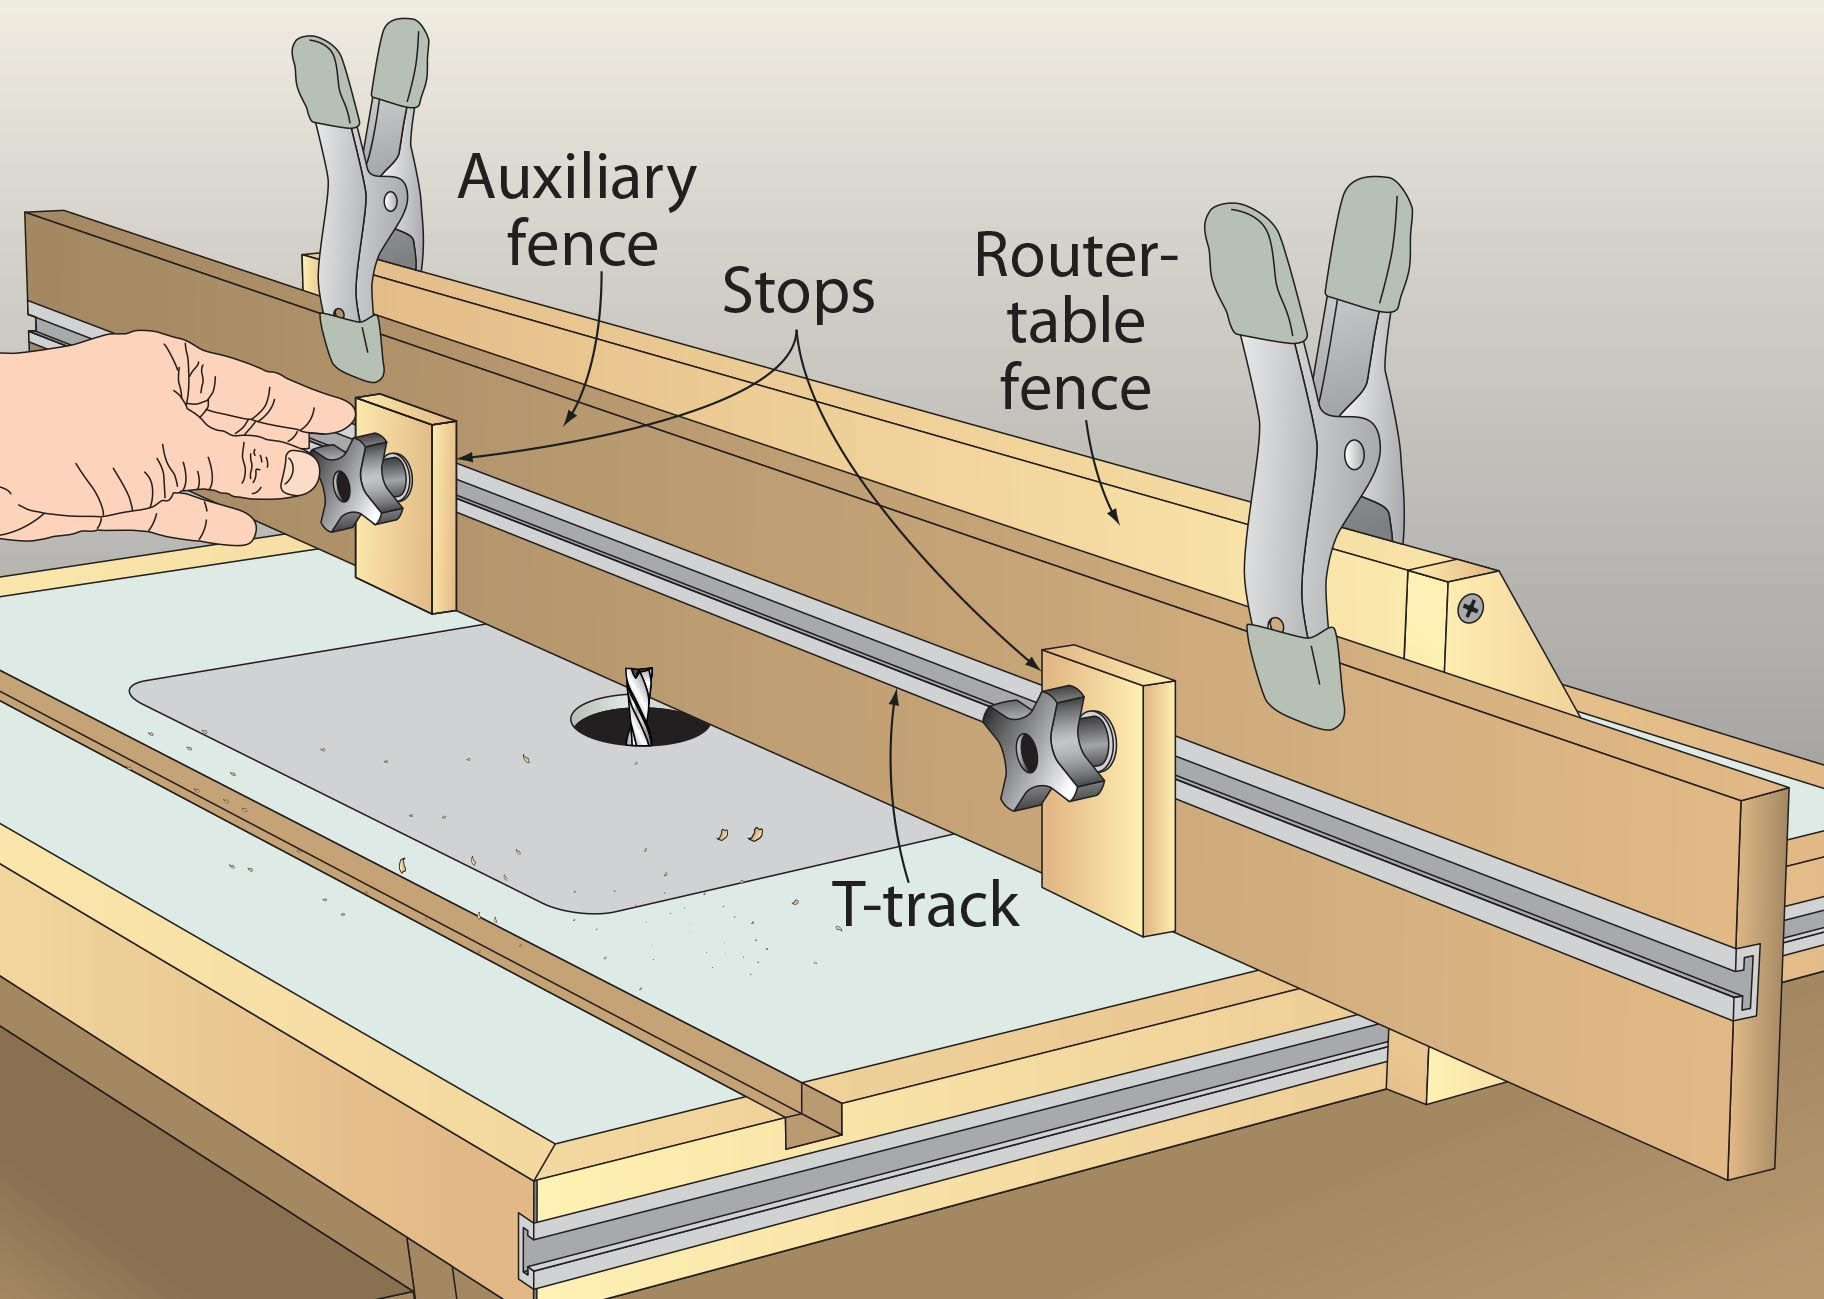 Lengthy auxiliary fence extends router table range to routing lengthy auxiliary fence extends router table range to routing stopped slots on long boards use greentooth Images